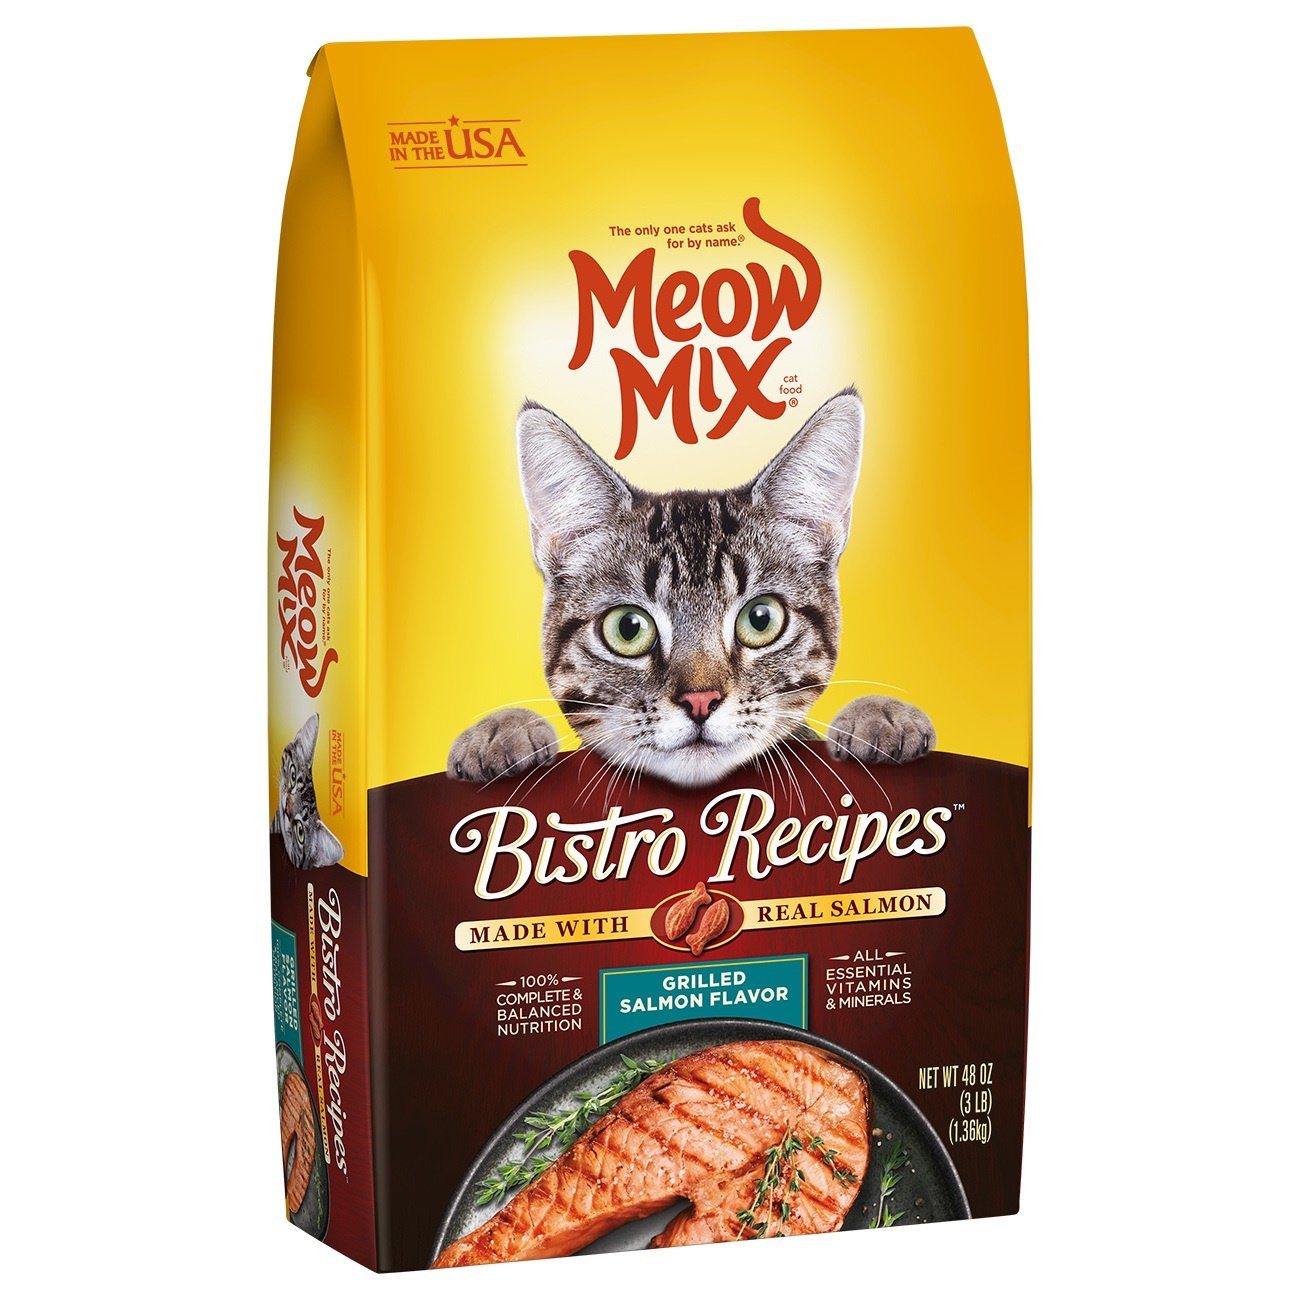 Meow Mix Bistro Recipes Grilled Salmon Flavor Dry Cat Food, 3 Lb (Pack Of 4) by Meow Mix